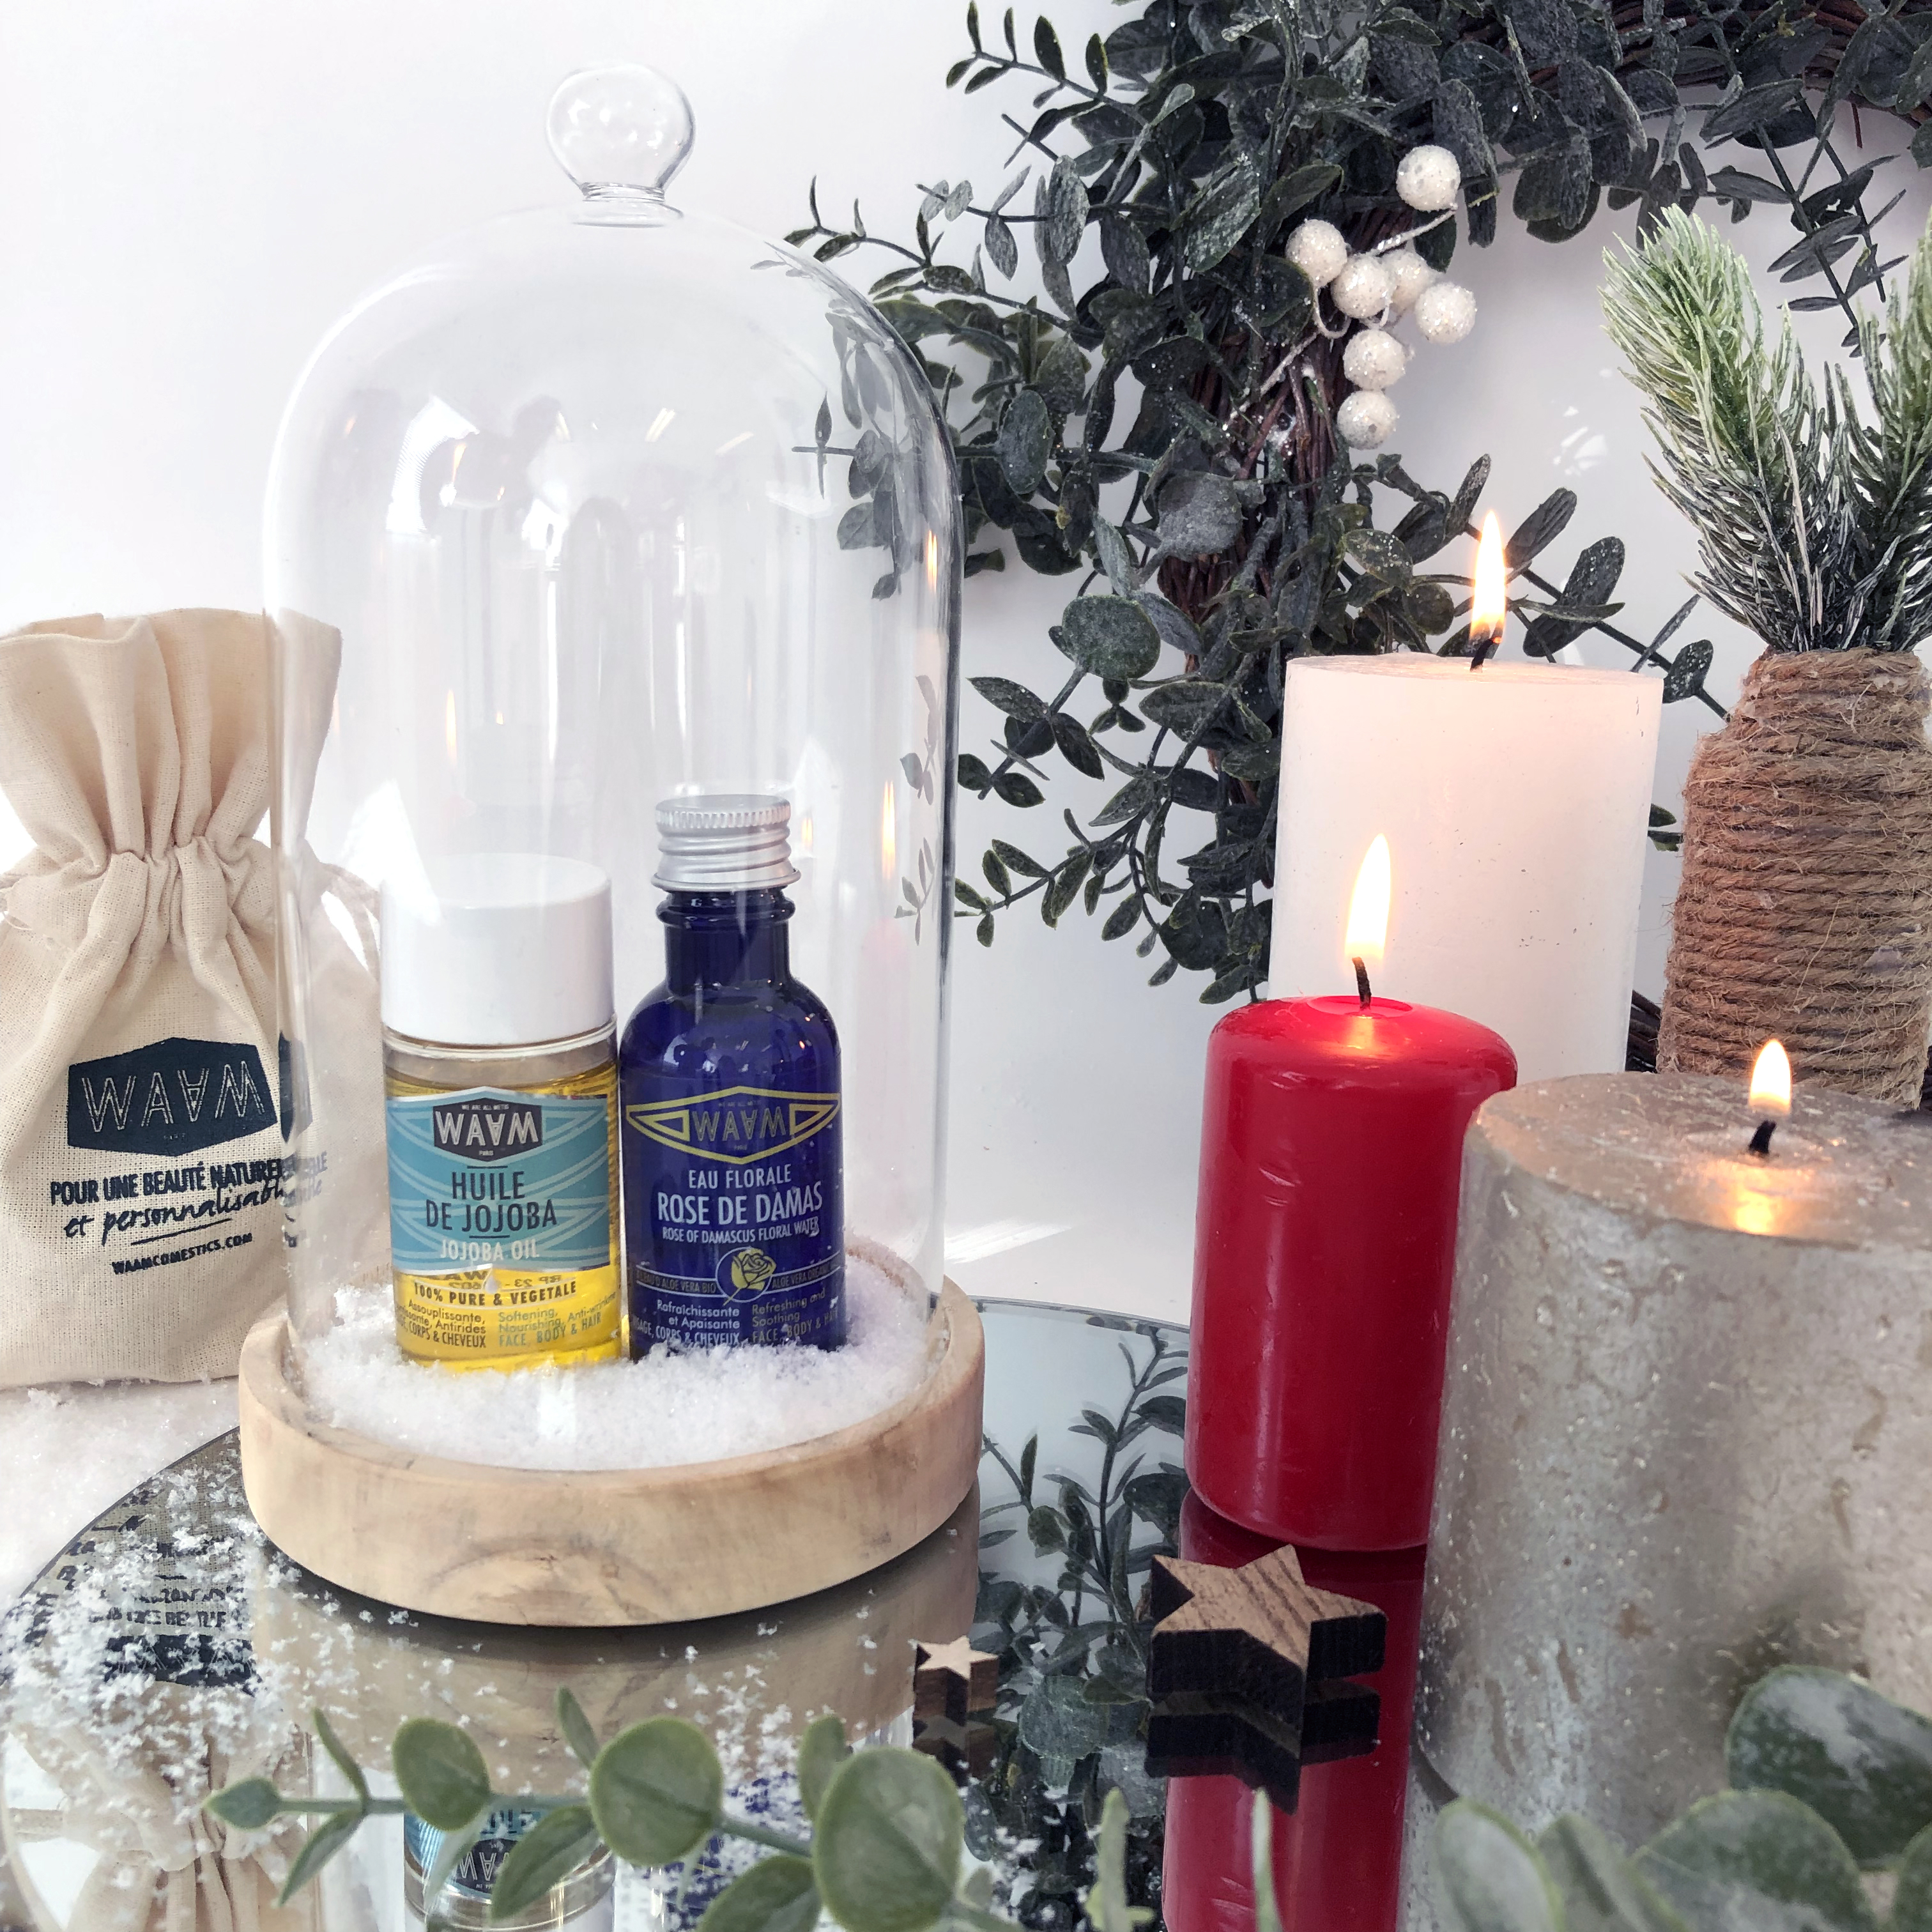 Boutique de noel - Mini duo - Démaquillant